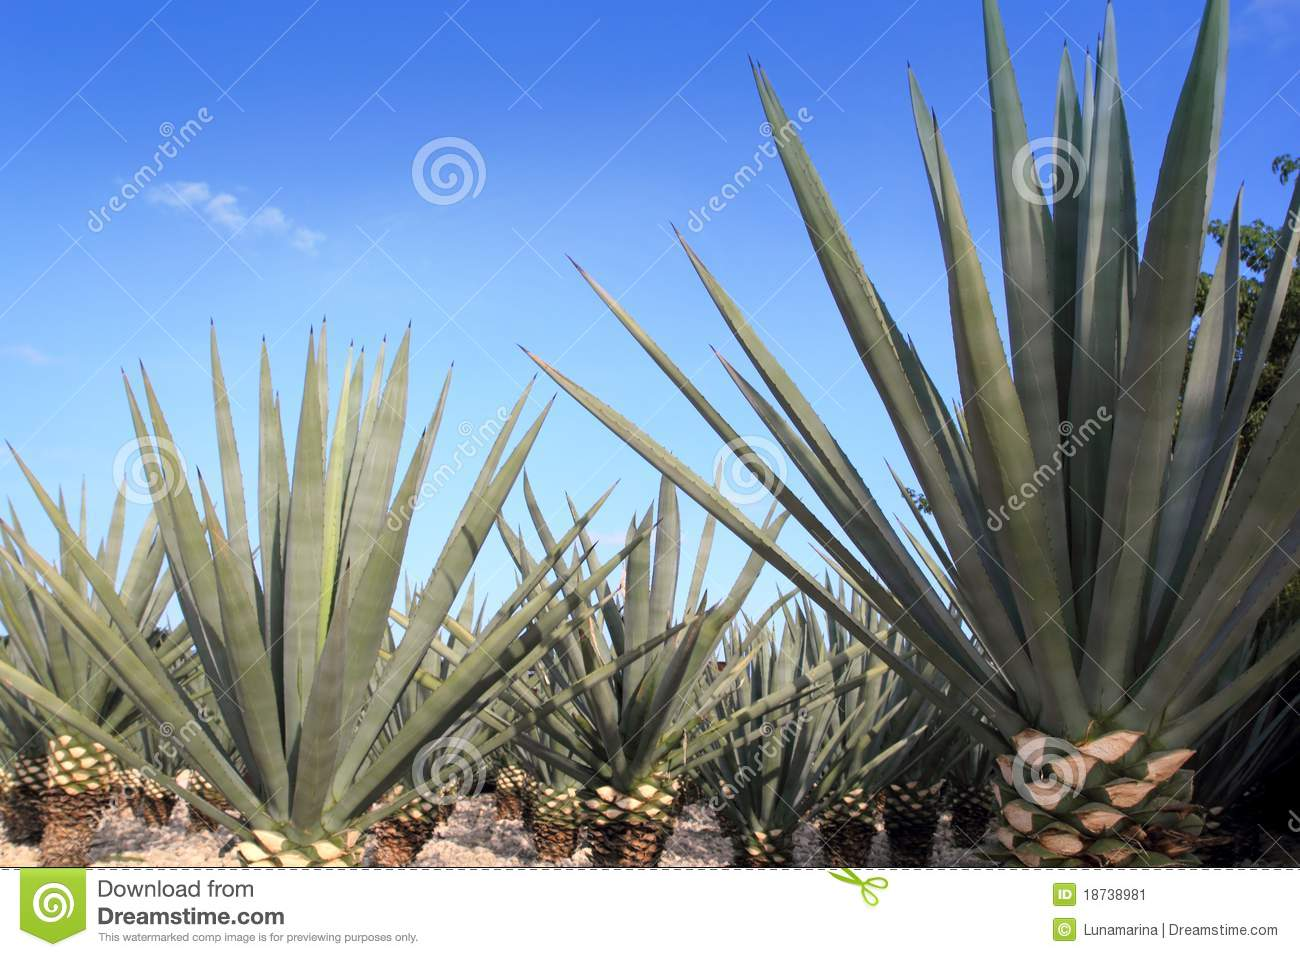 Blue Agave Tequila Plant Agave tequilana plant for